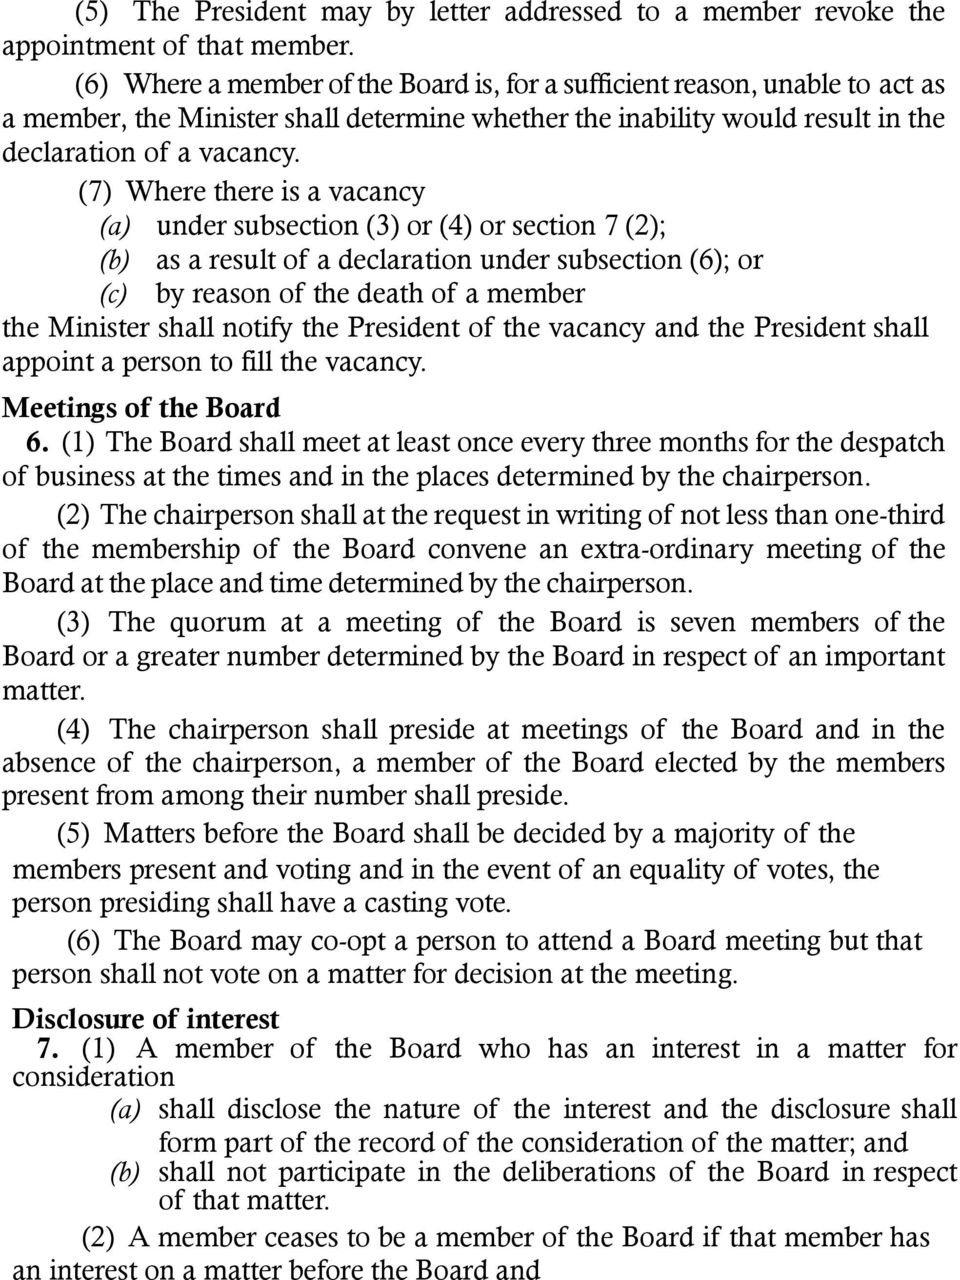 (7) Where there is a vacancy (a) under subsection (3) or (4) or section 7 (2); (b) as a result of a declaration under subsection (6); or (c) by reason of the death of a member the Minister shall